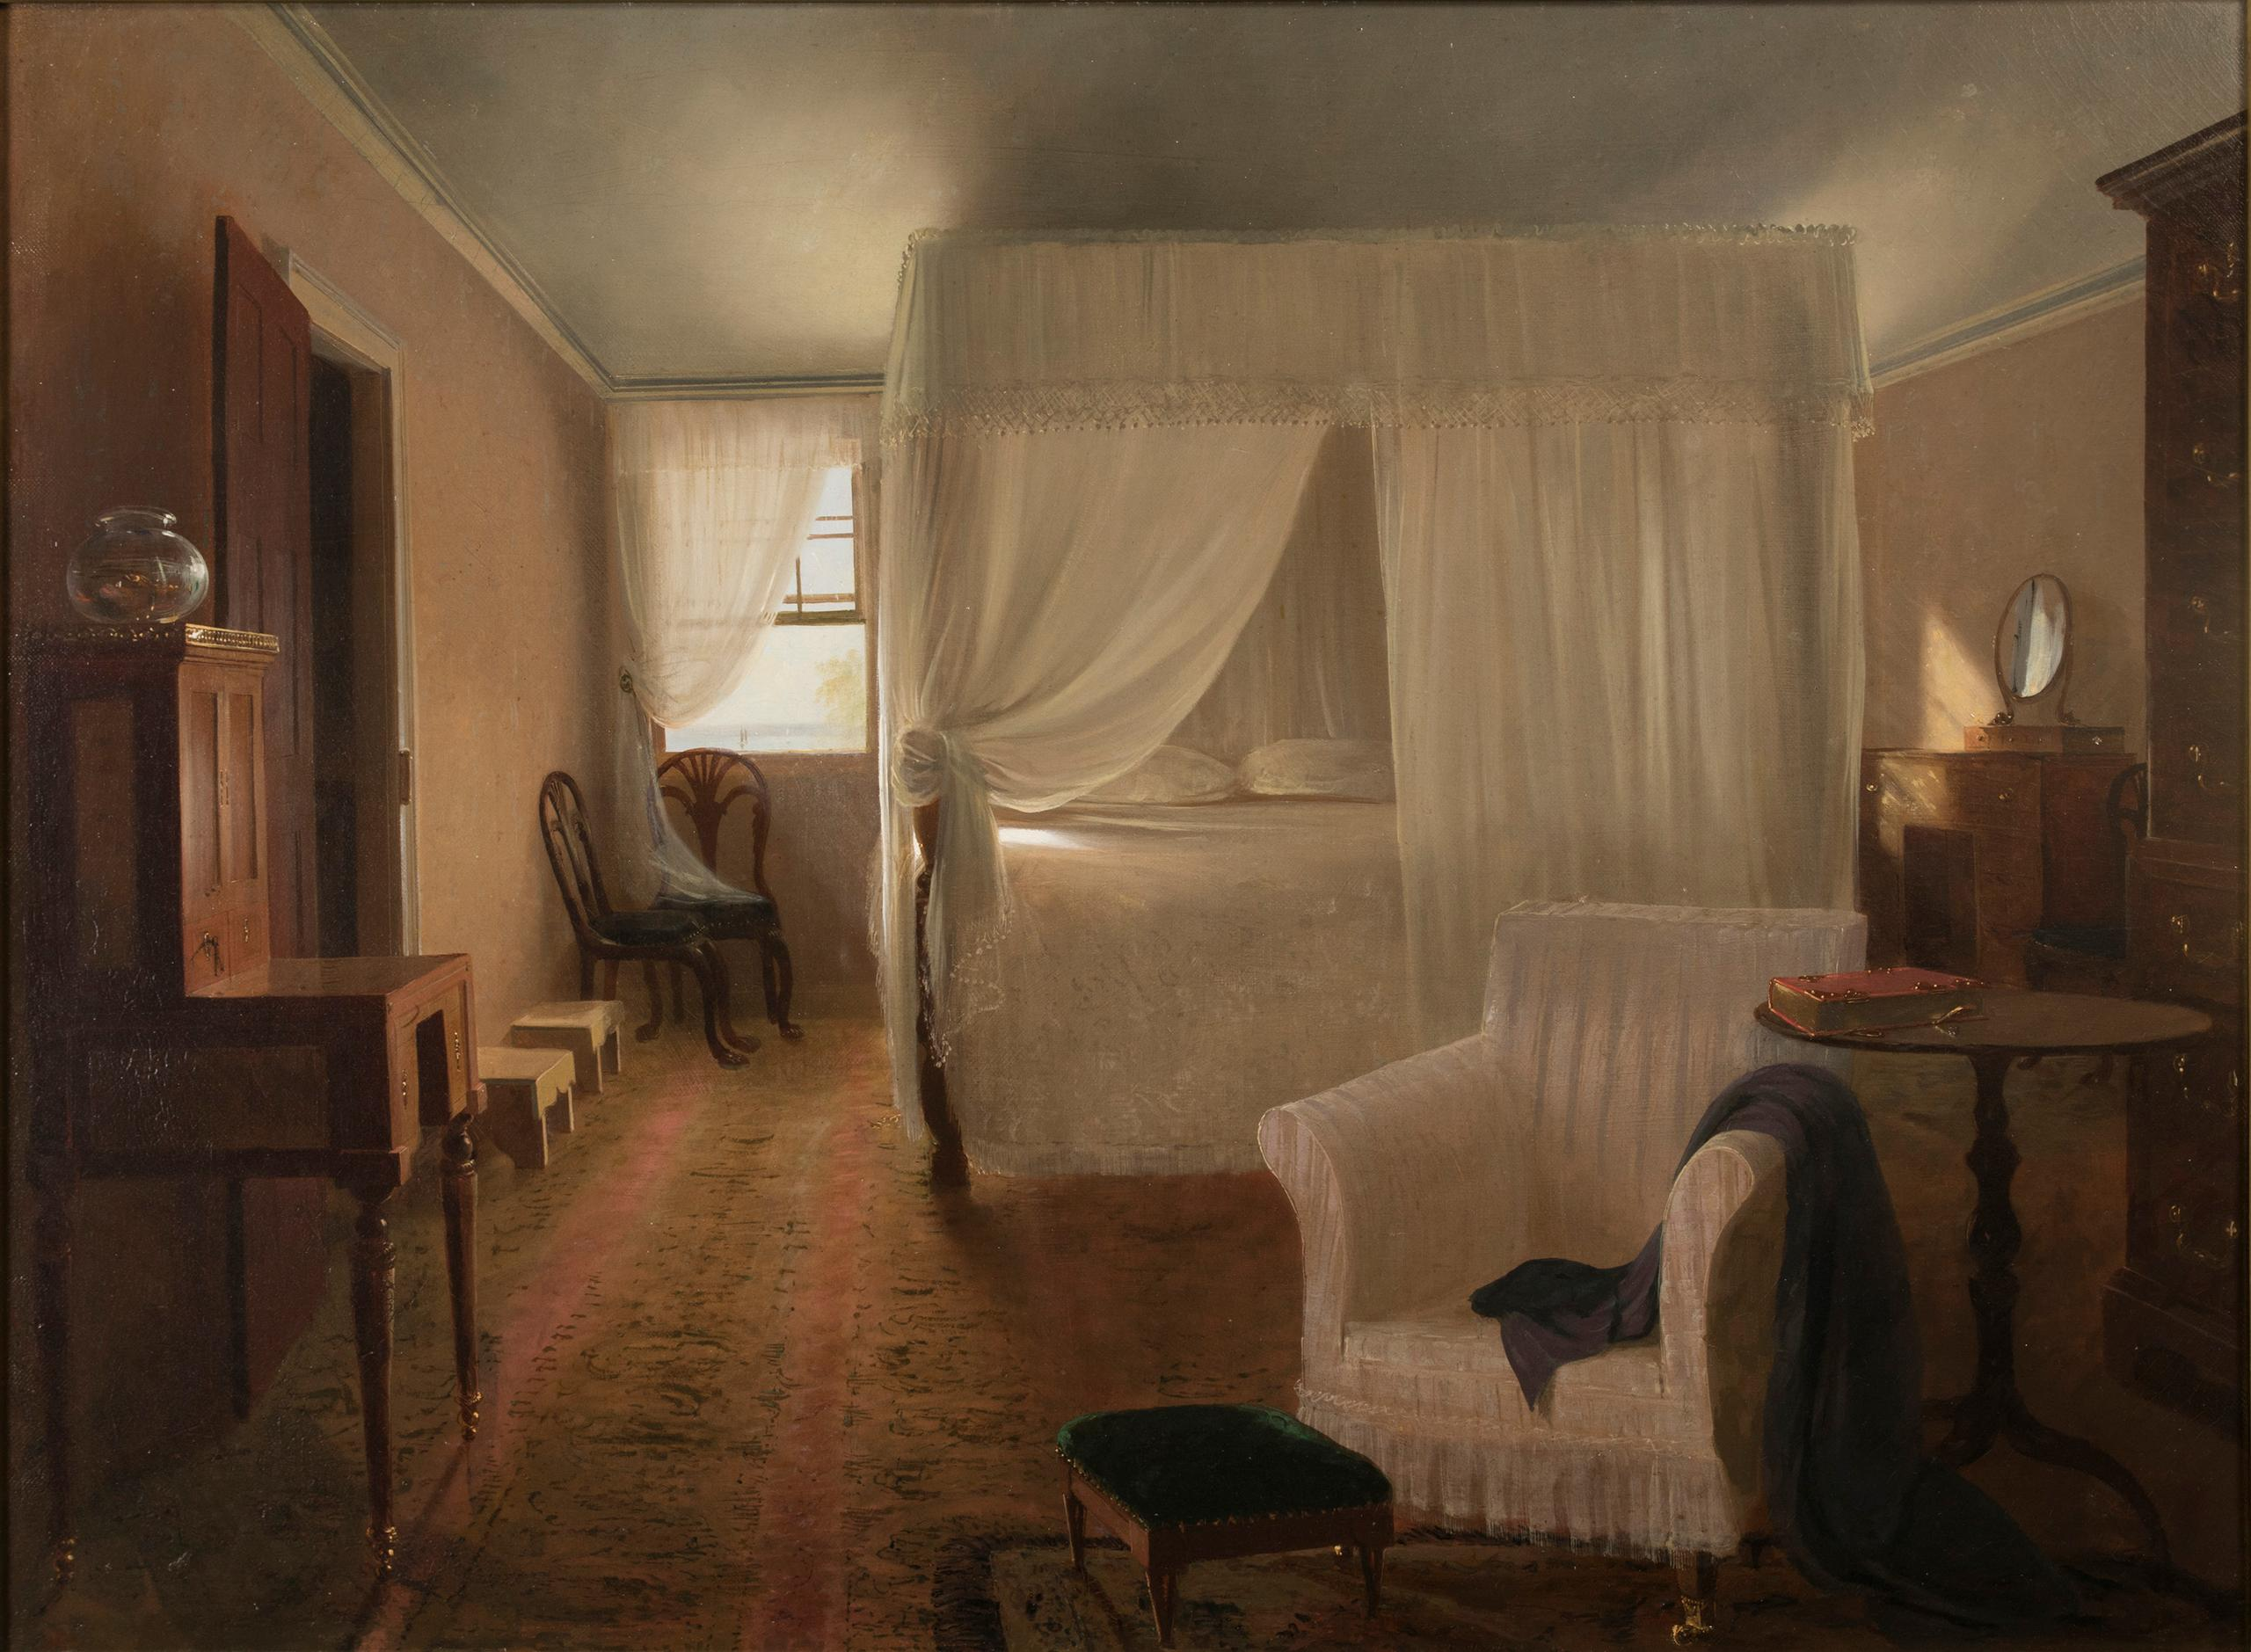 The Bed Chamber of Washington, by John Gadsby Chapman, 1835. Purchased with Funds Provided by Lucy S. Rhame and an Anonymous Donor, 2017.